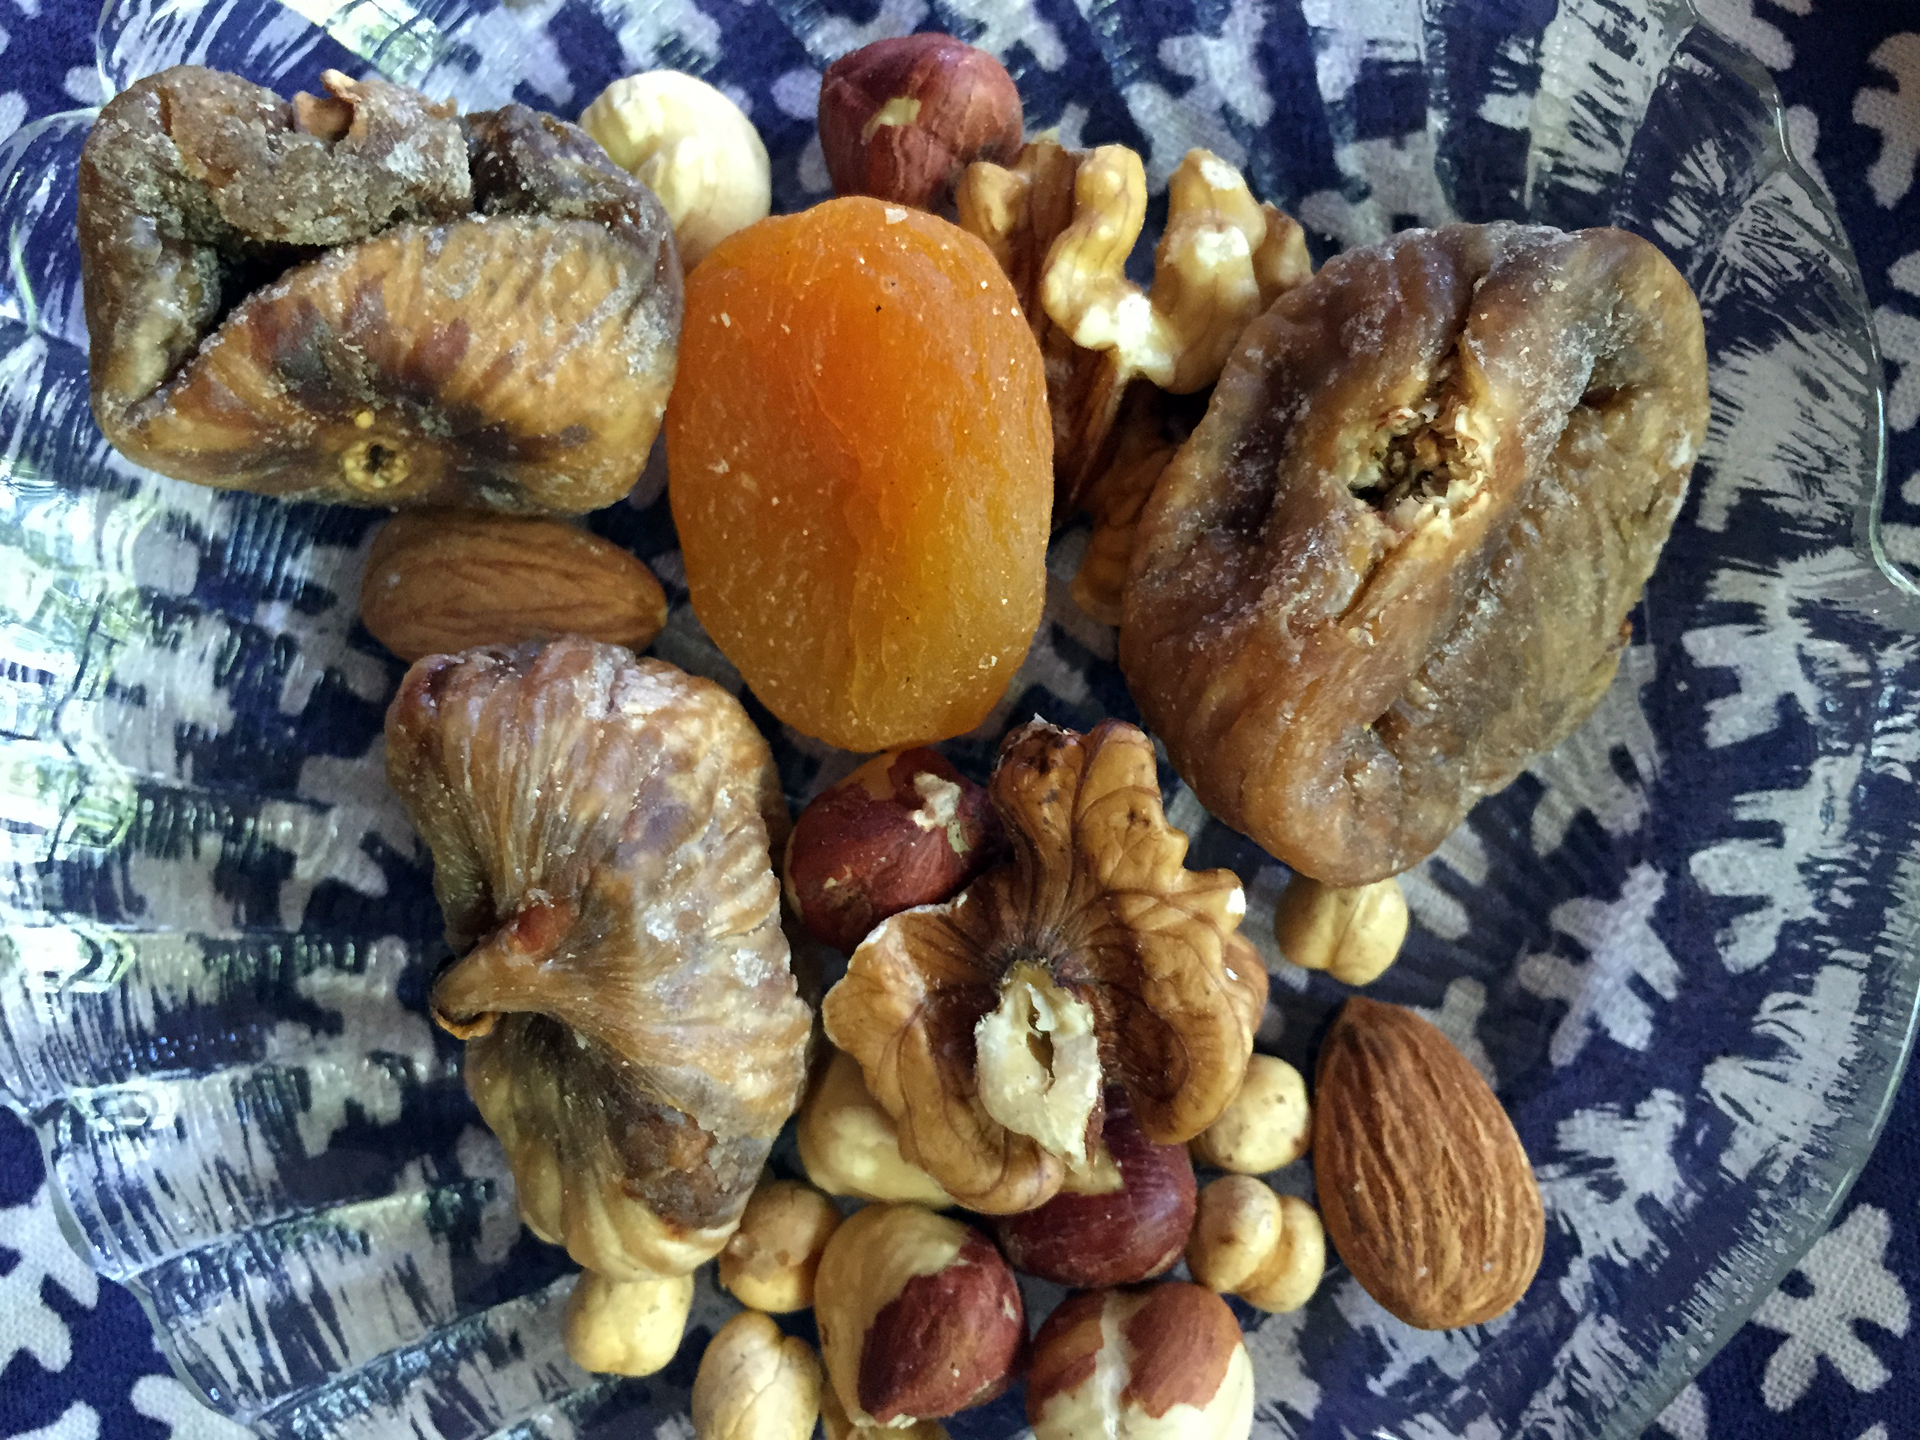 Dried fruits and nuts are displayed on the table and also provided to guests who visit your home to greet you in the new year.